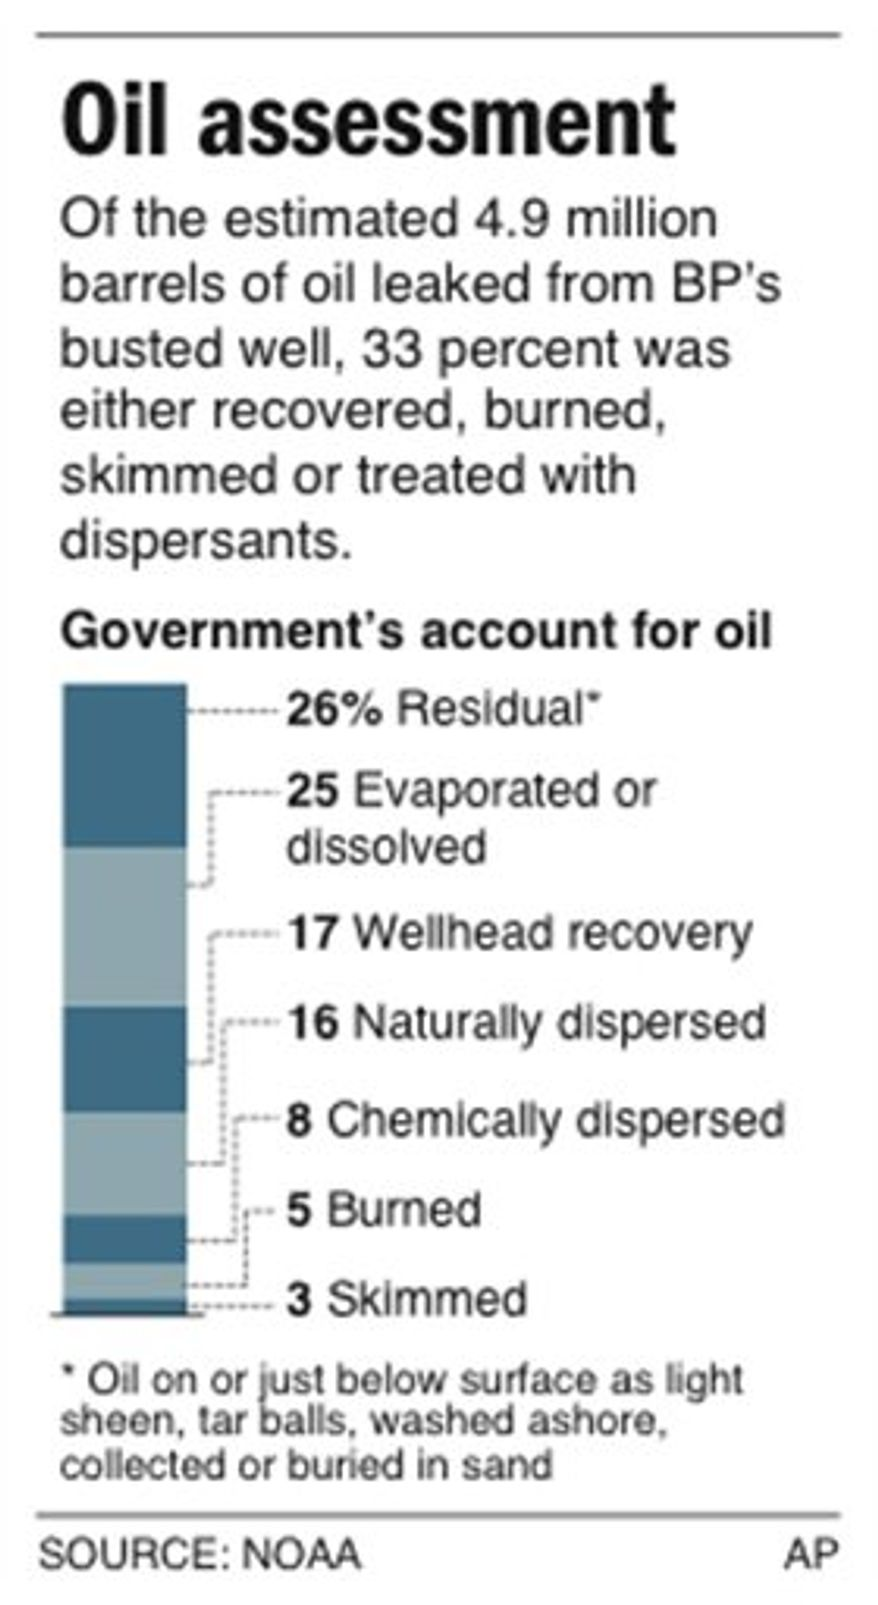 Graphic shows a breakdown of what happened to the oil from the Deepwater Horizon explosion according to the National Incident Command